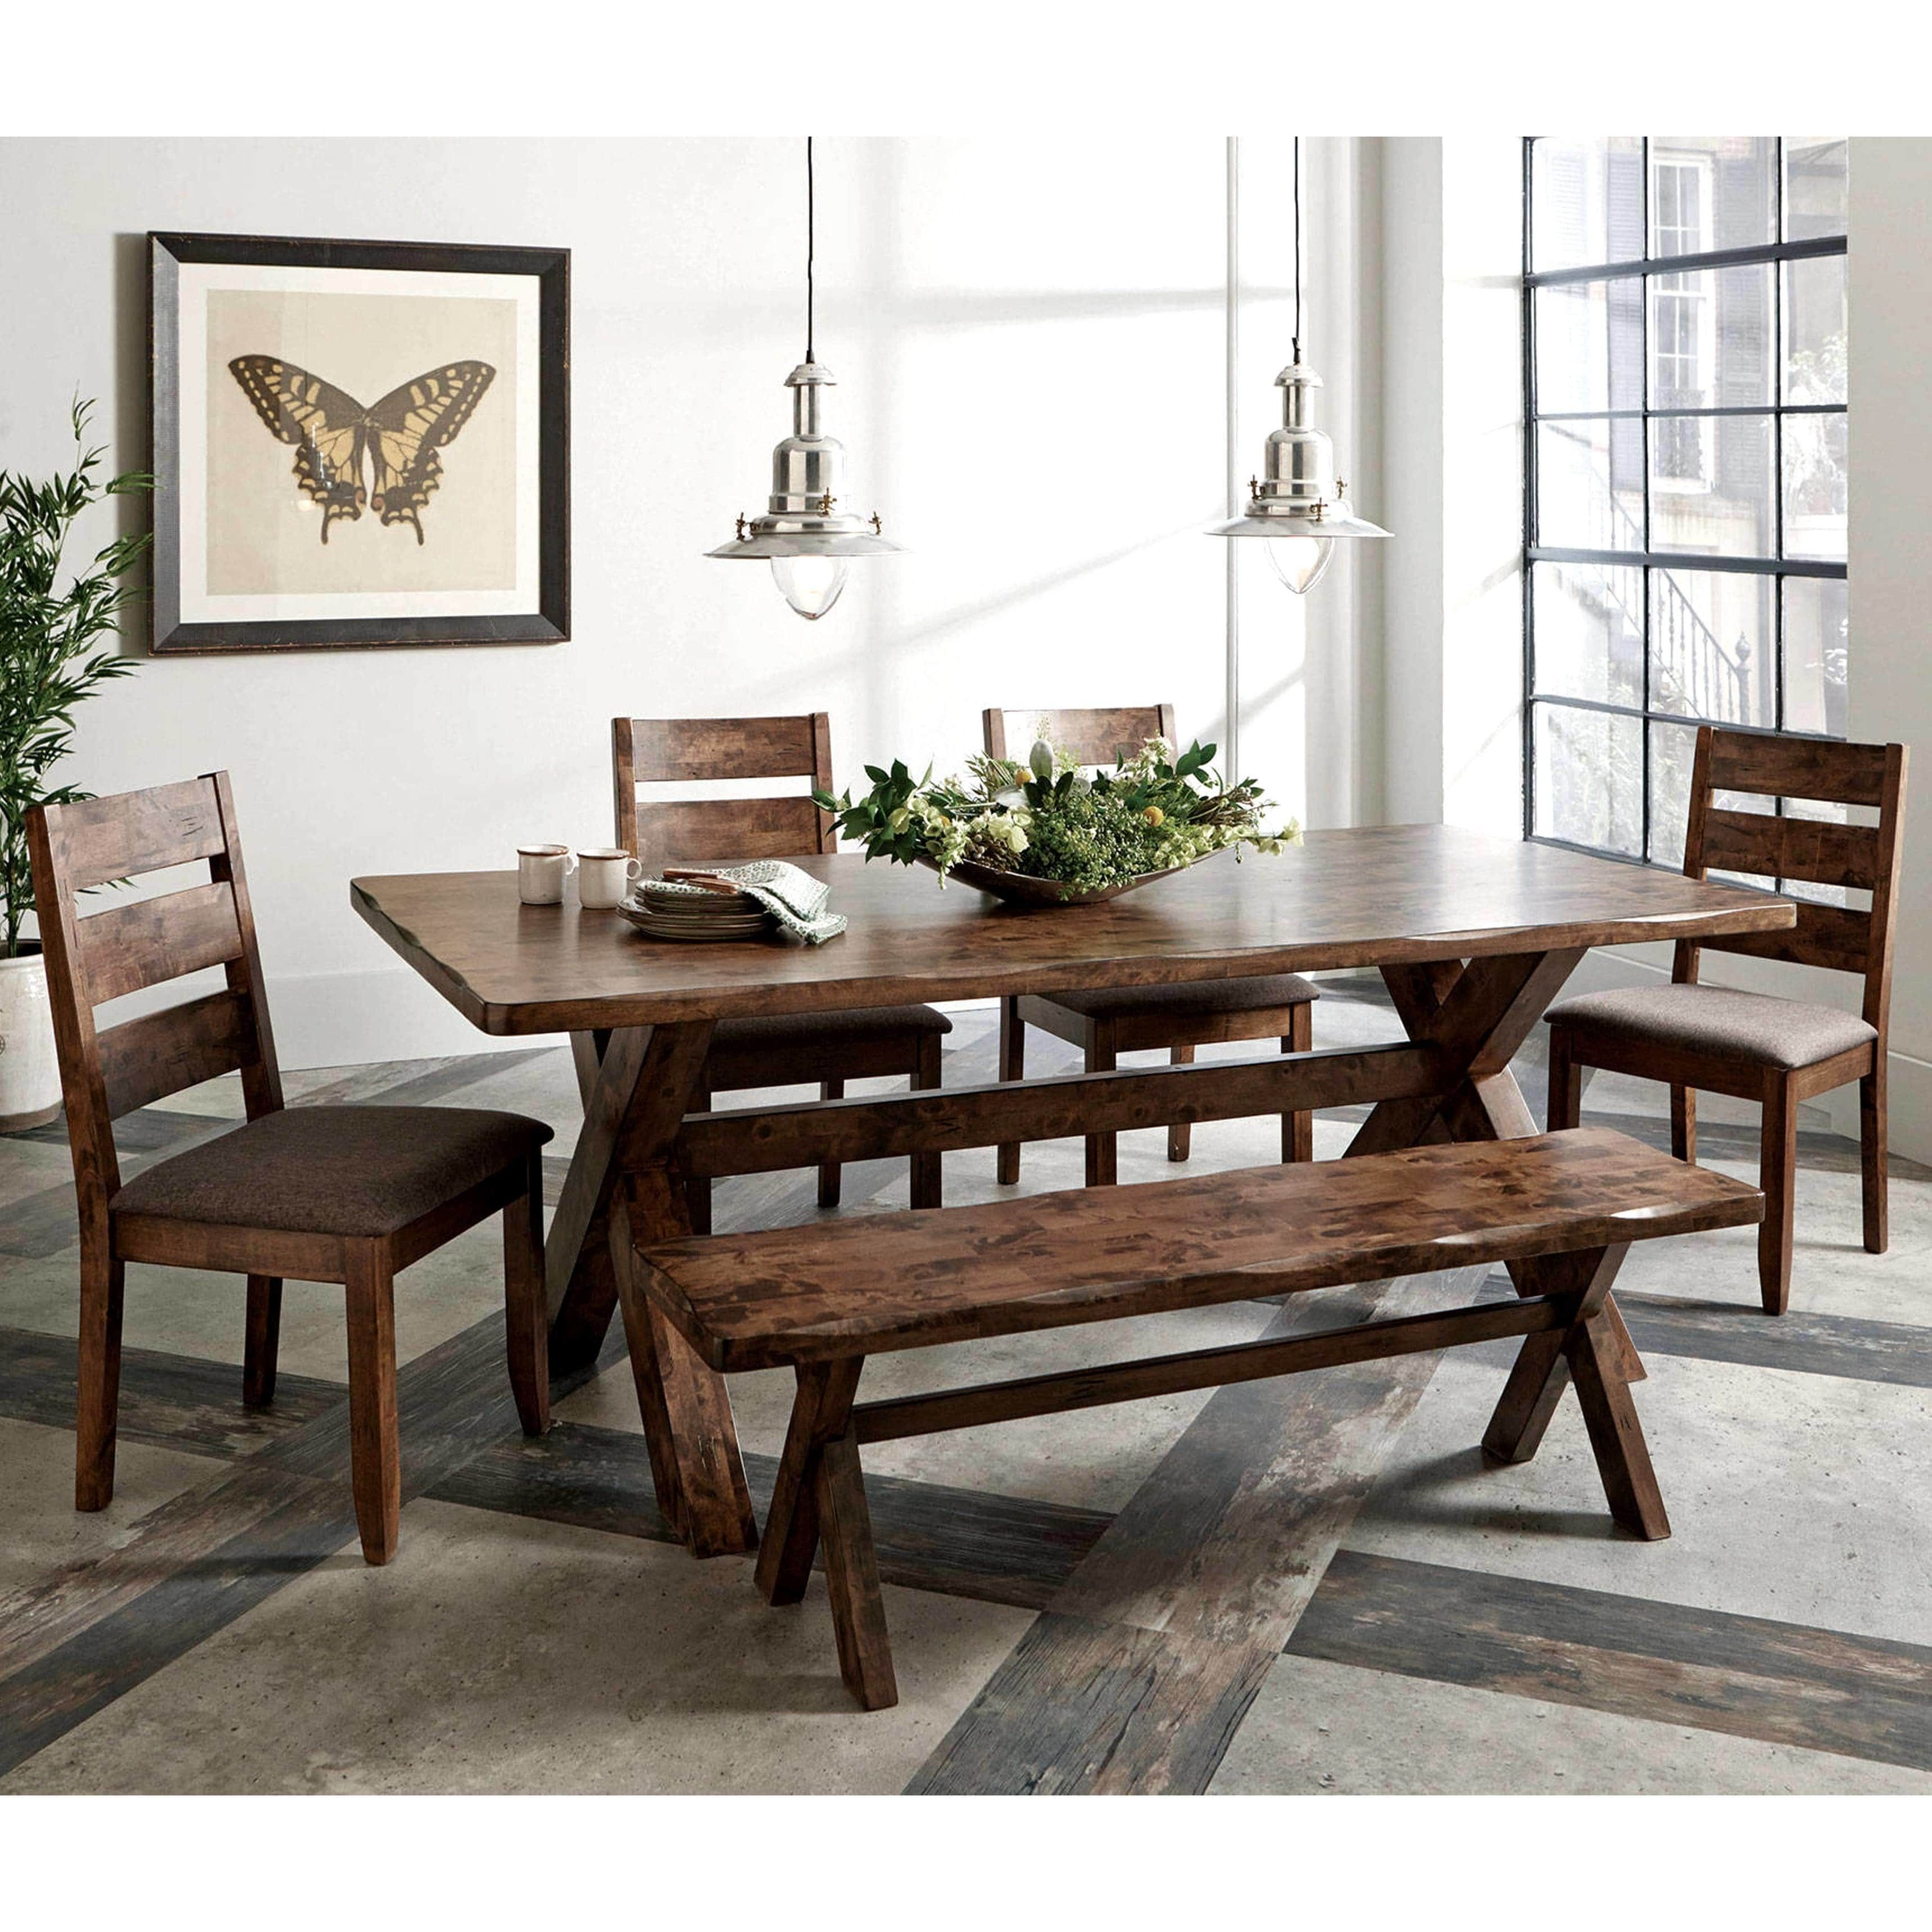 Rustic Knotty Burl Designed Country Style Dining Set (1 ...